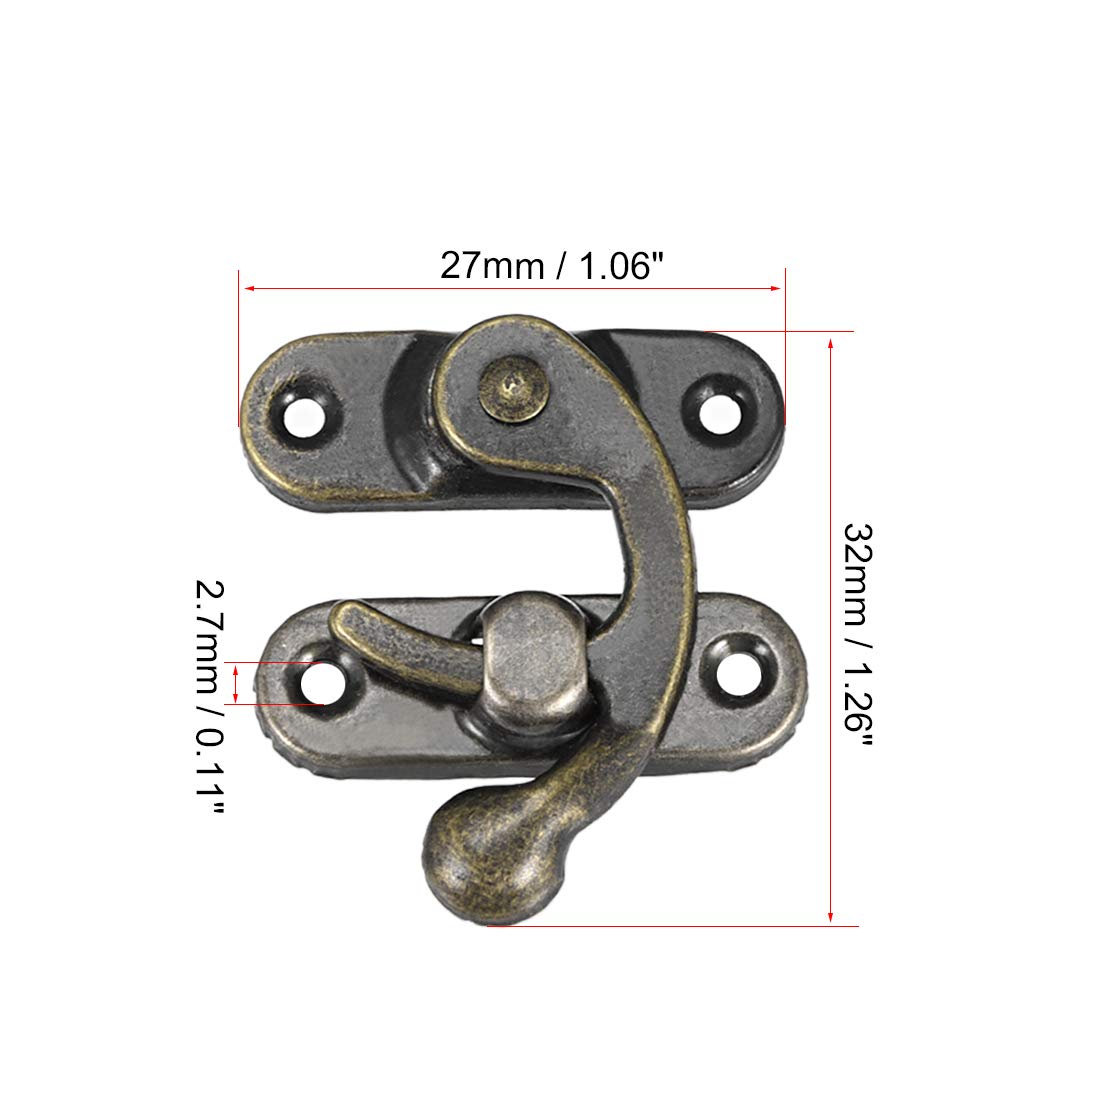 20-Piece Uxcell a14082700ux0095 Right Latch Hook Antique Wood Box Hasp Catch Decor Bronze Tone